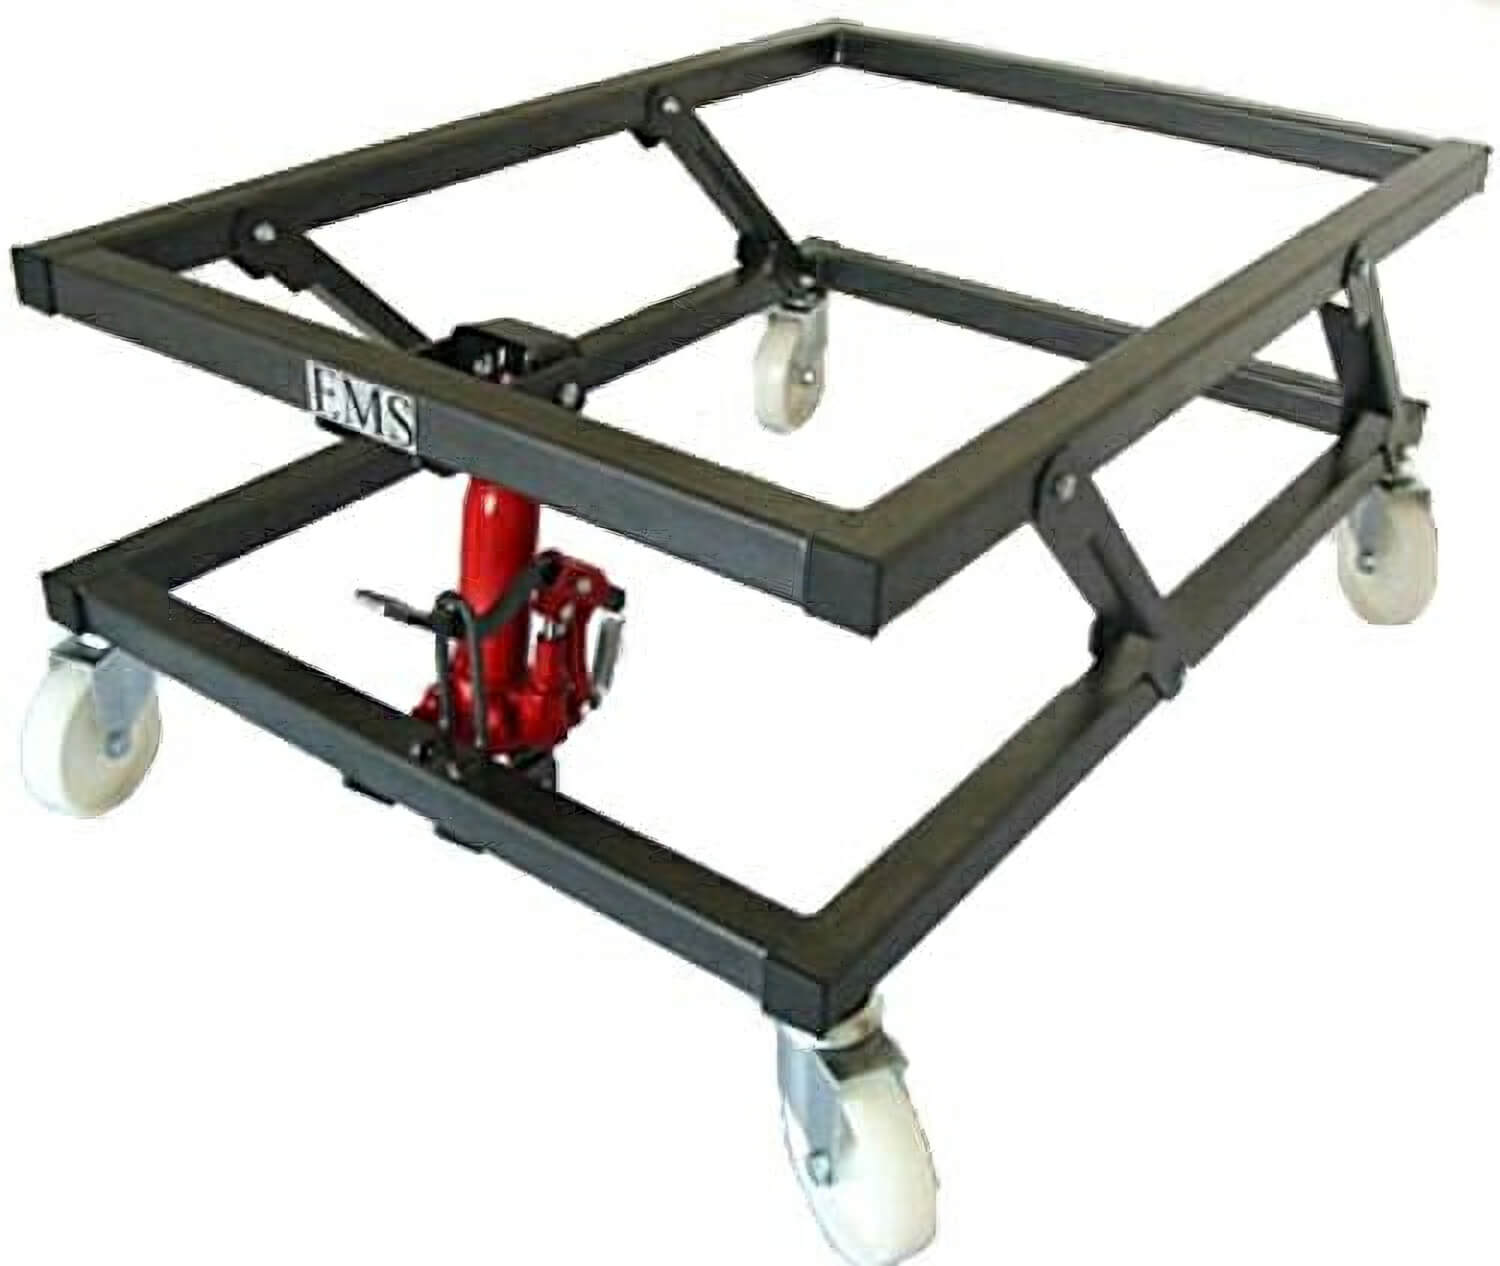 Hydraulic Pedal Lift Pool Trolley (P7501) | Liberty Games